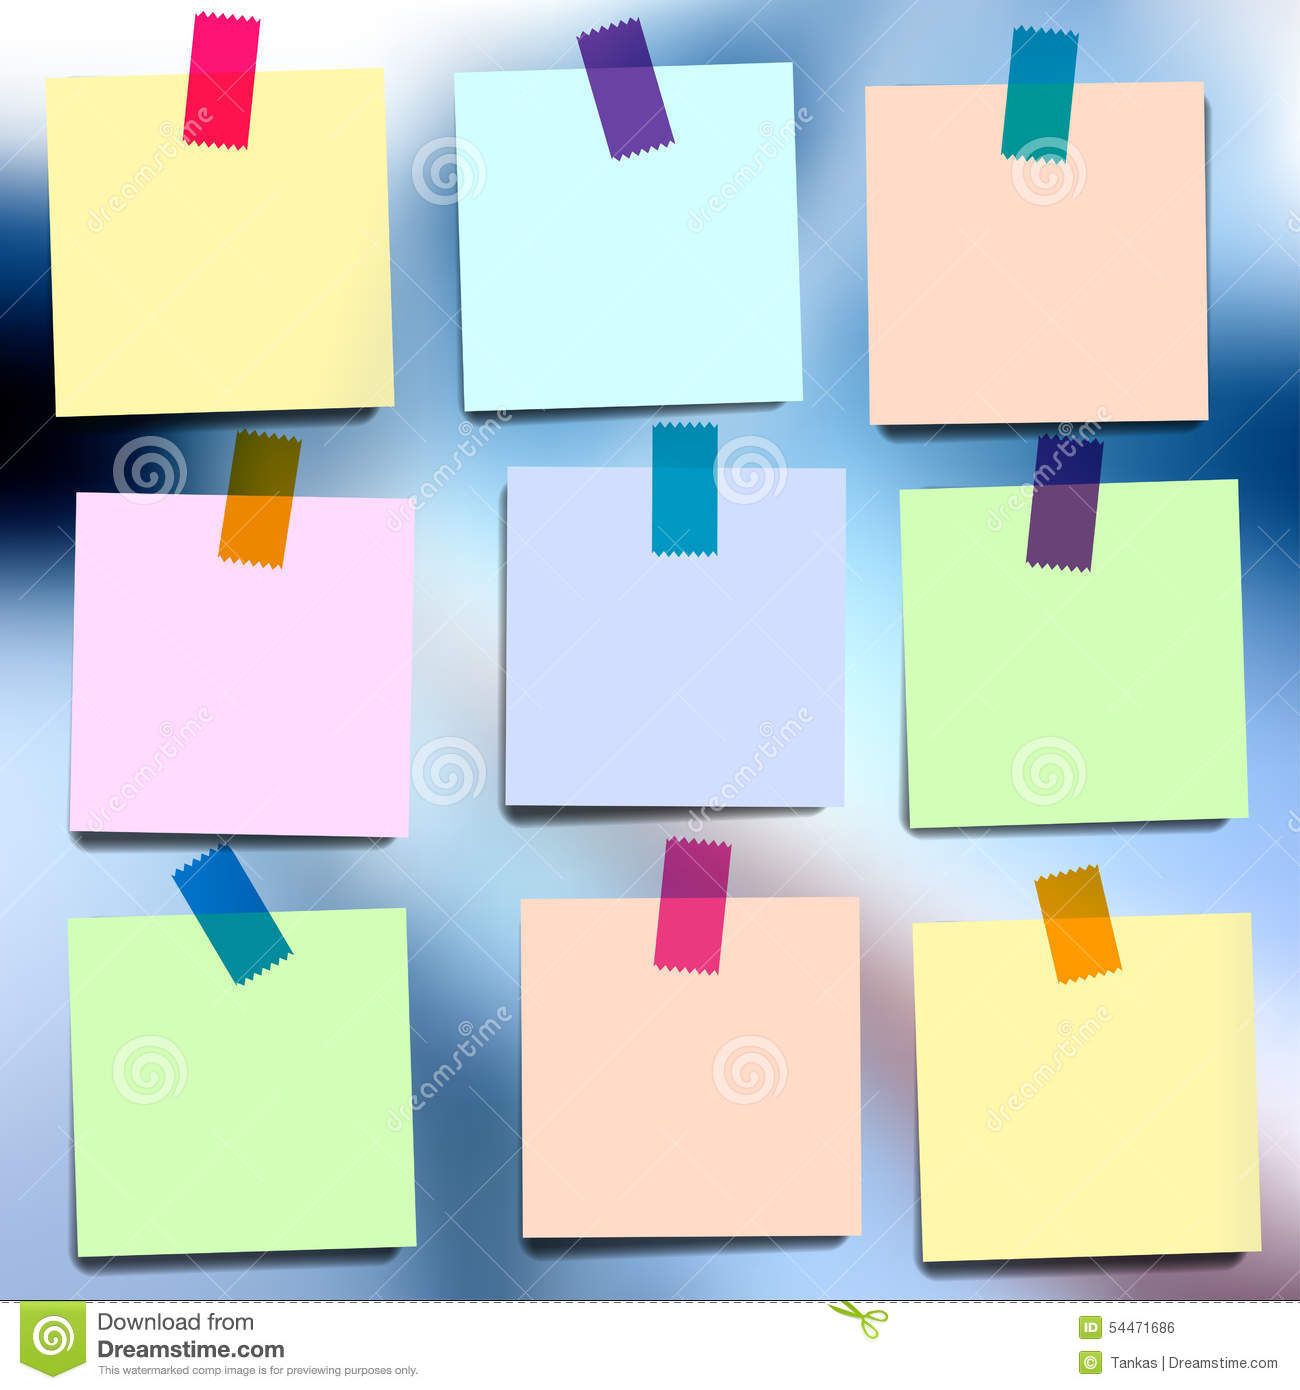 Free vector graphic sticky note note info paper free image on - Royalty Free Vector Background Blurred Sticky Vector Wallpapers Paper